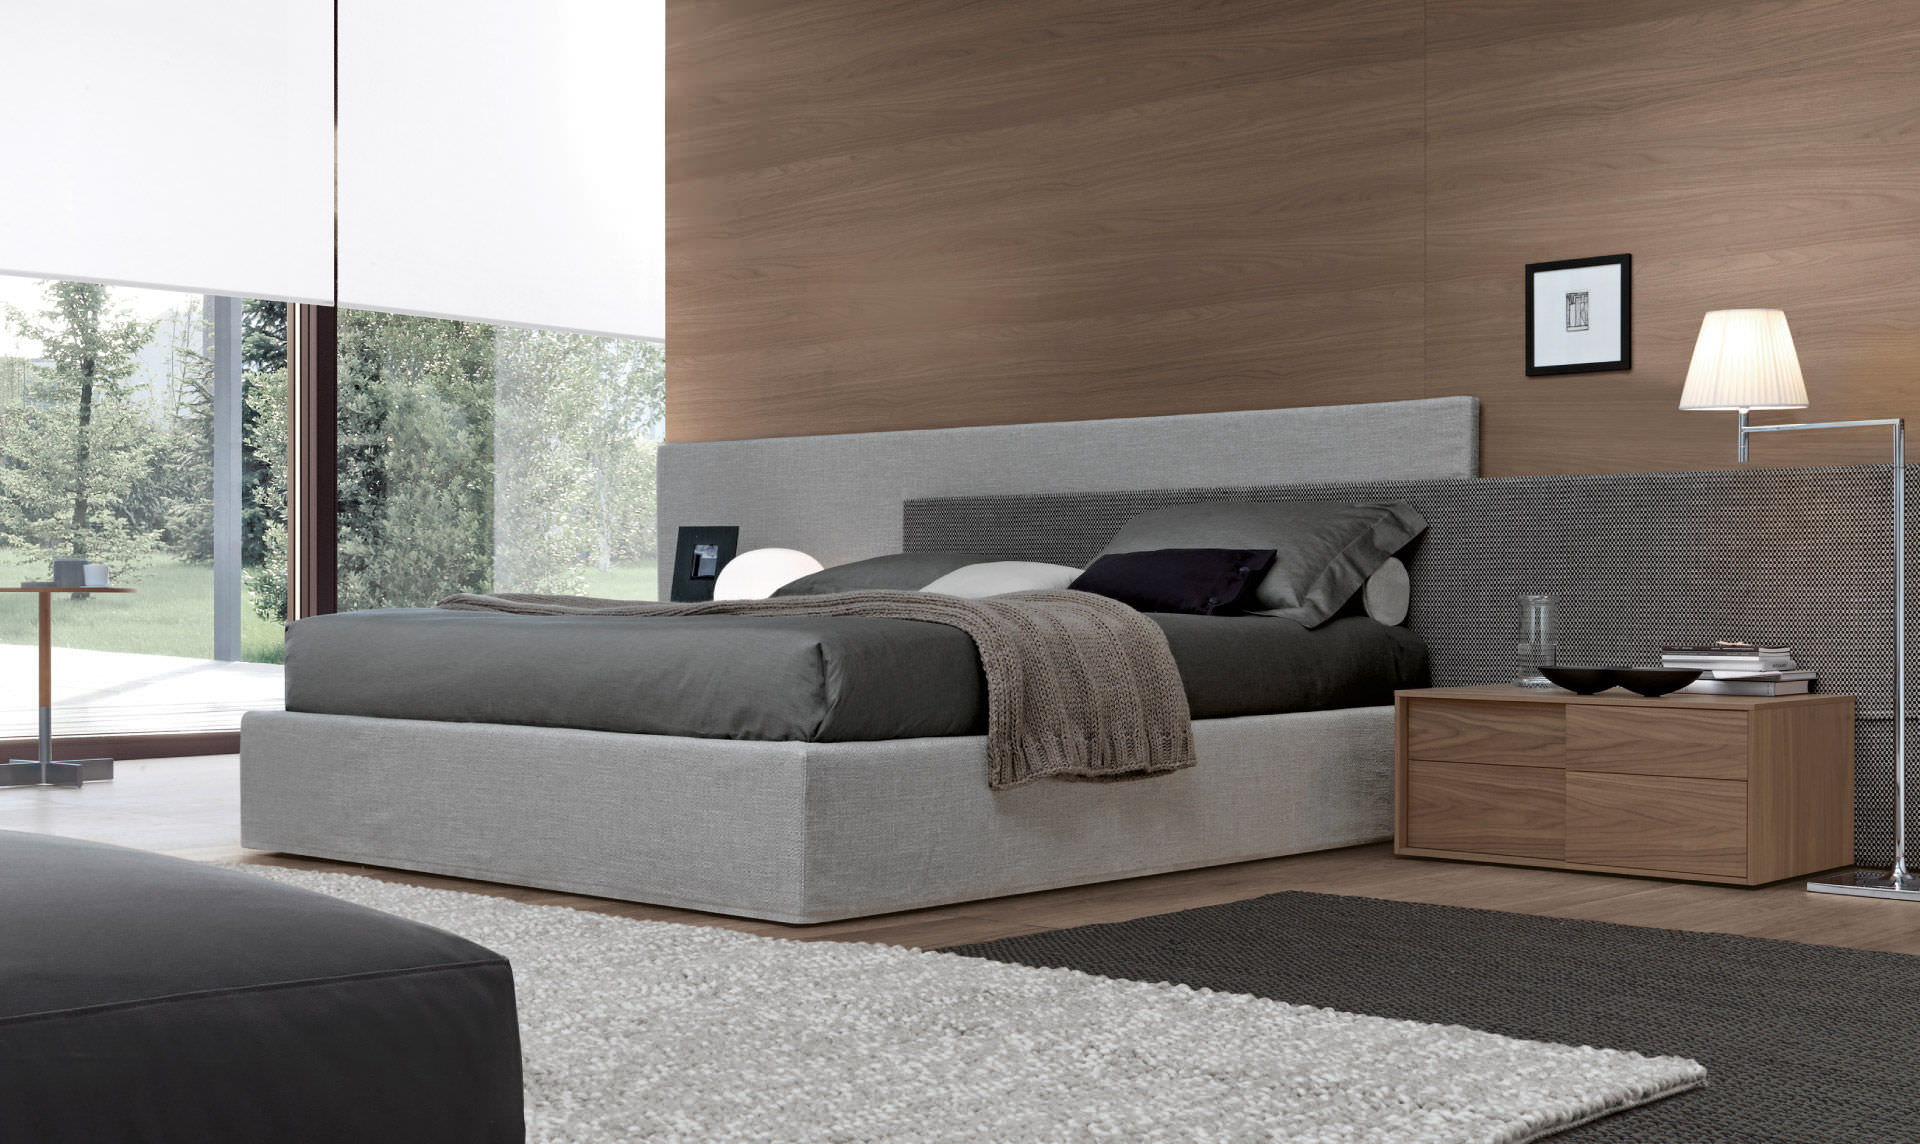 Letto standard / matrimoniale / moderno / in quercia - MYLOVE by ...